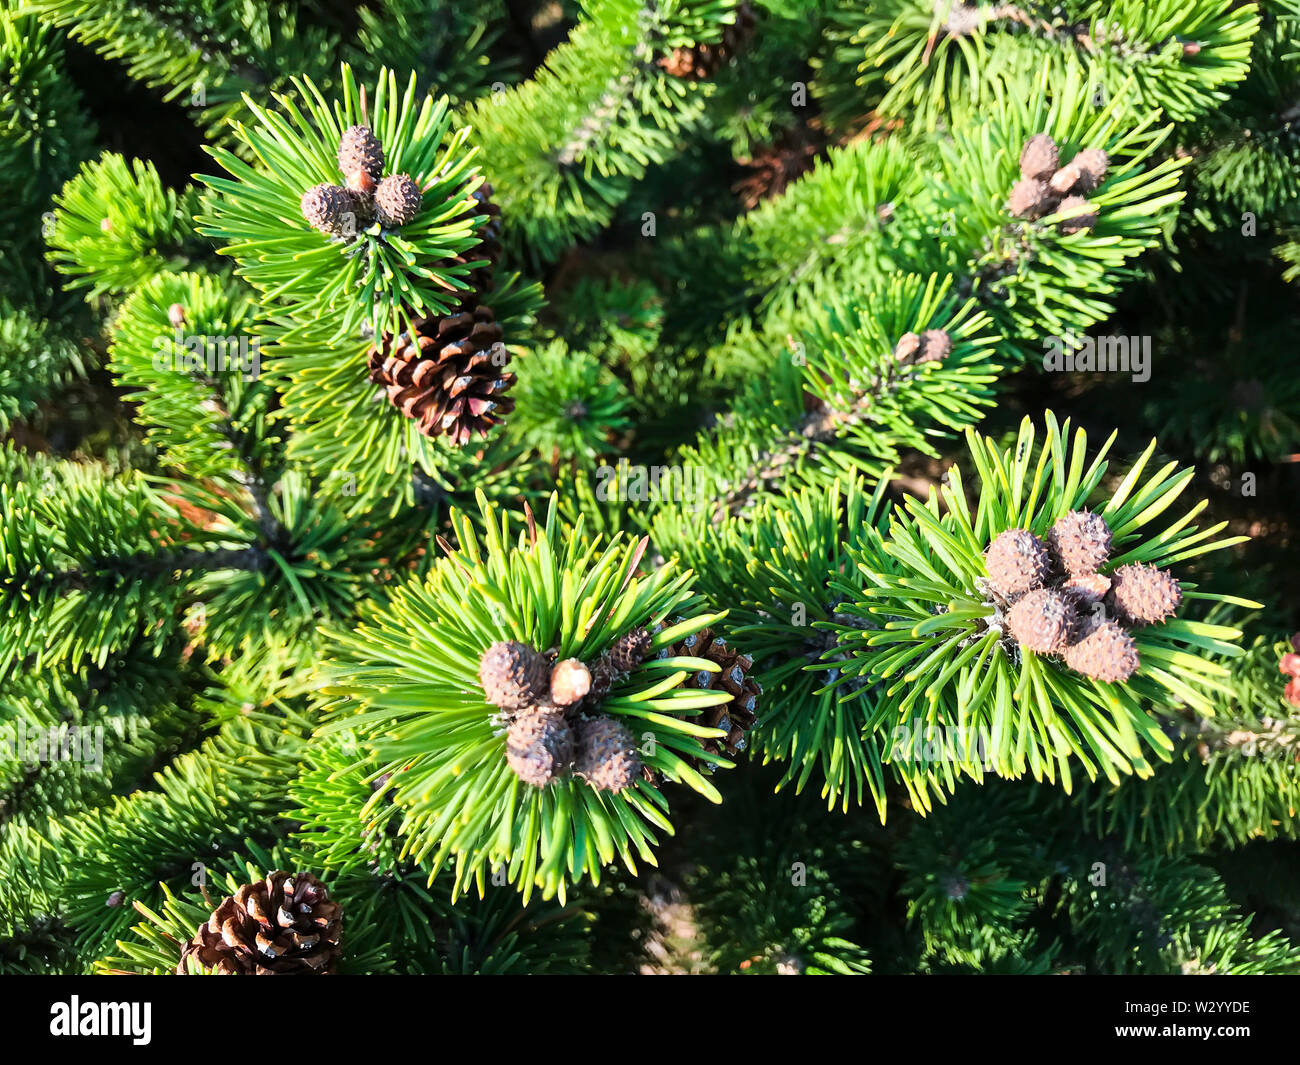 Branches of coniferous tree with cones - Stock Image